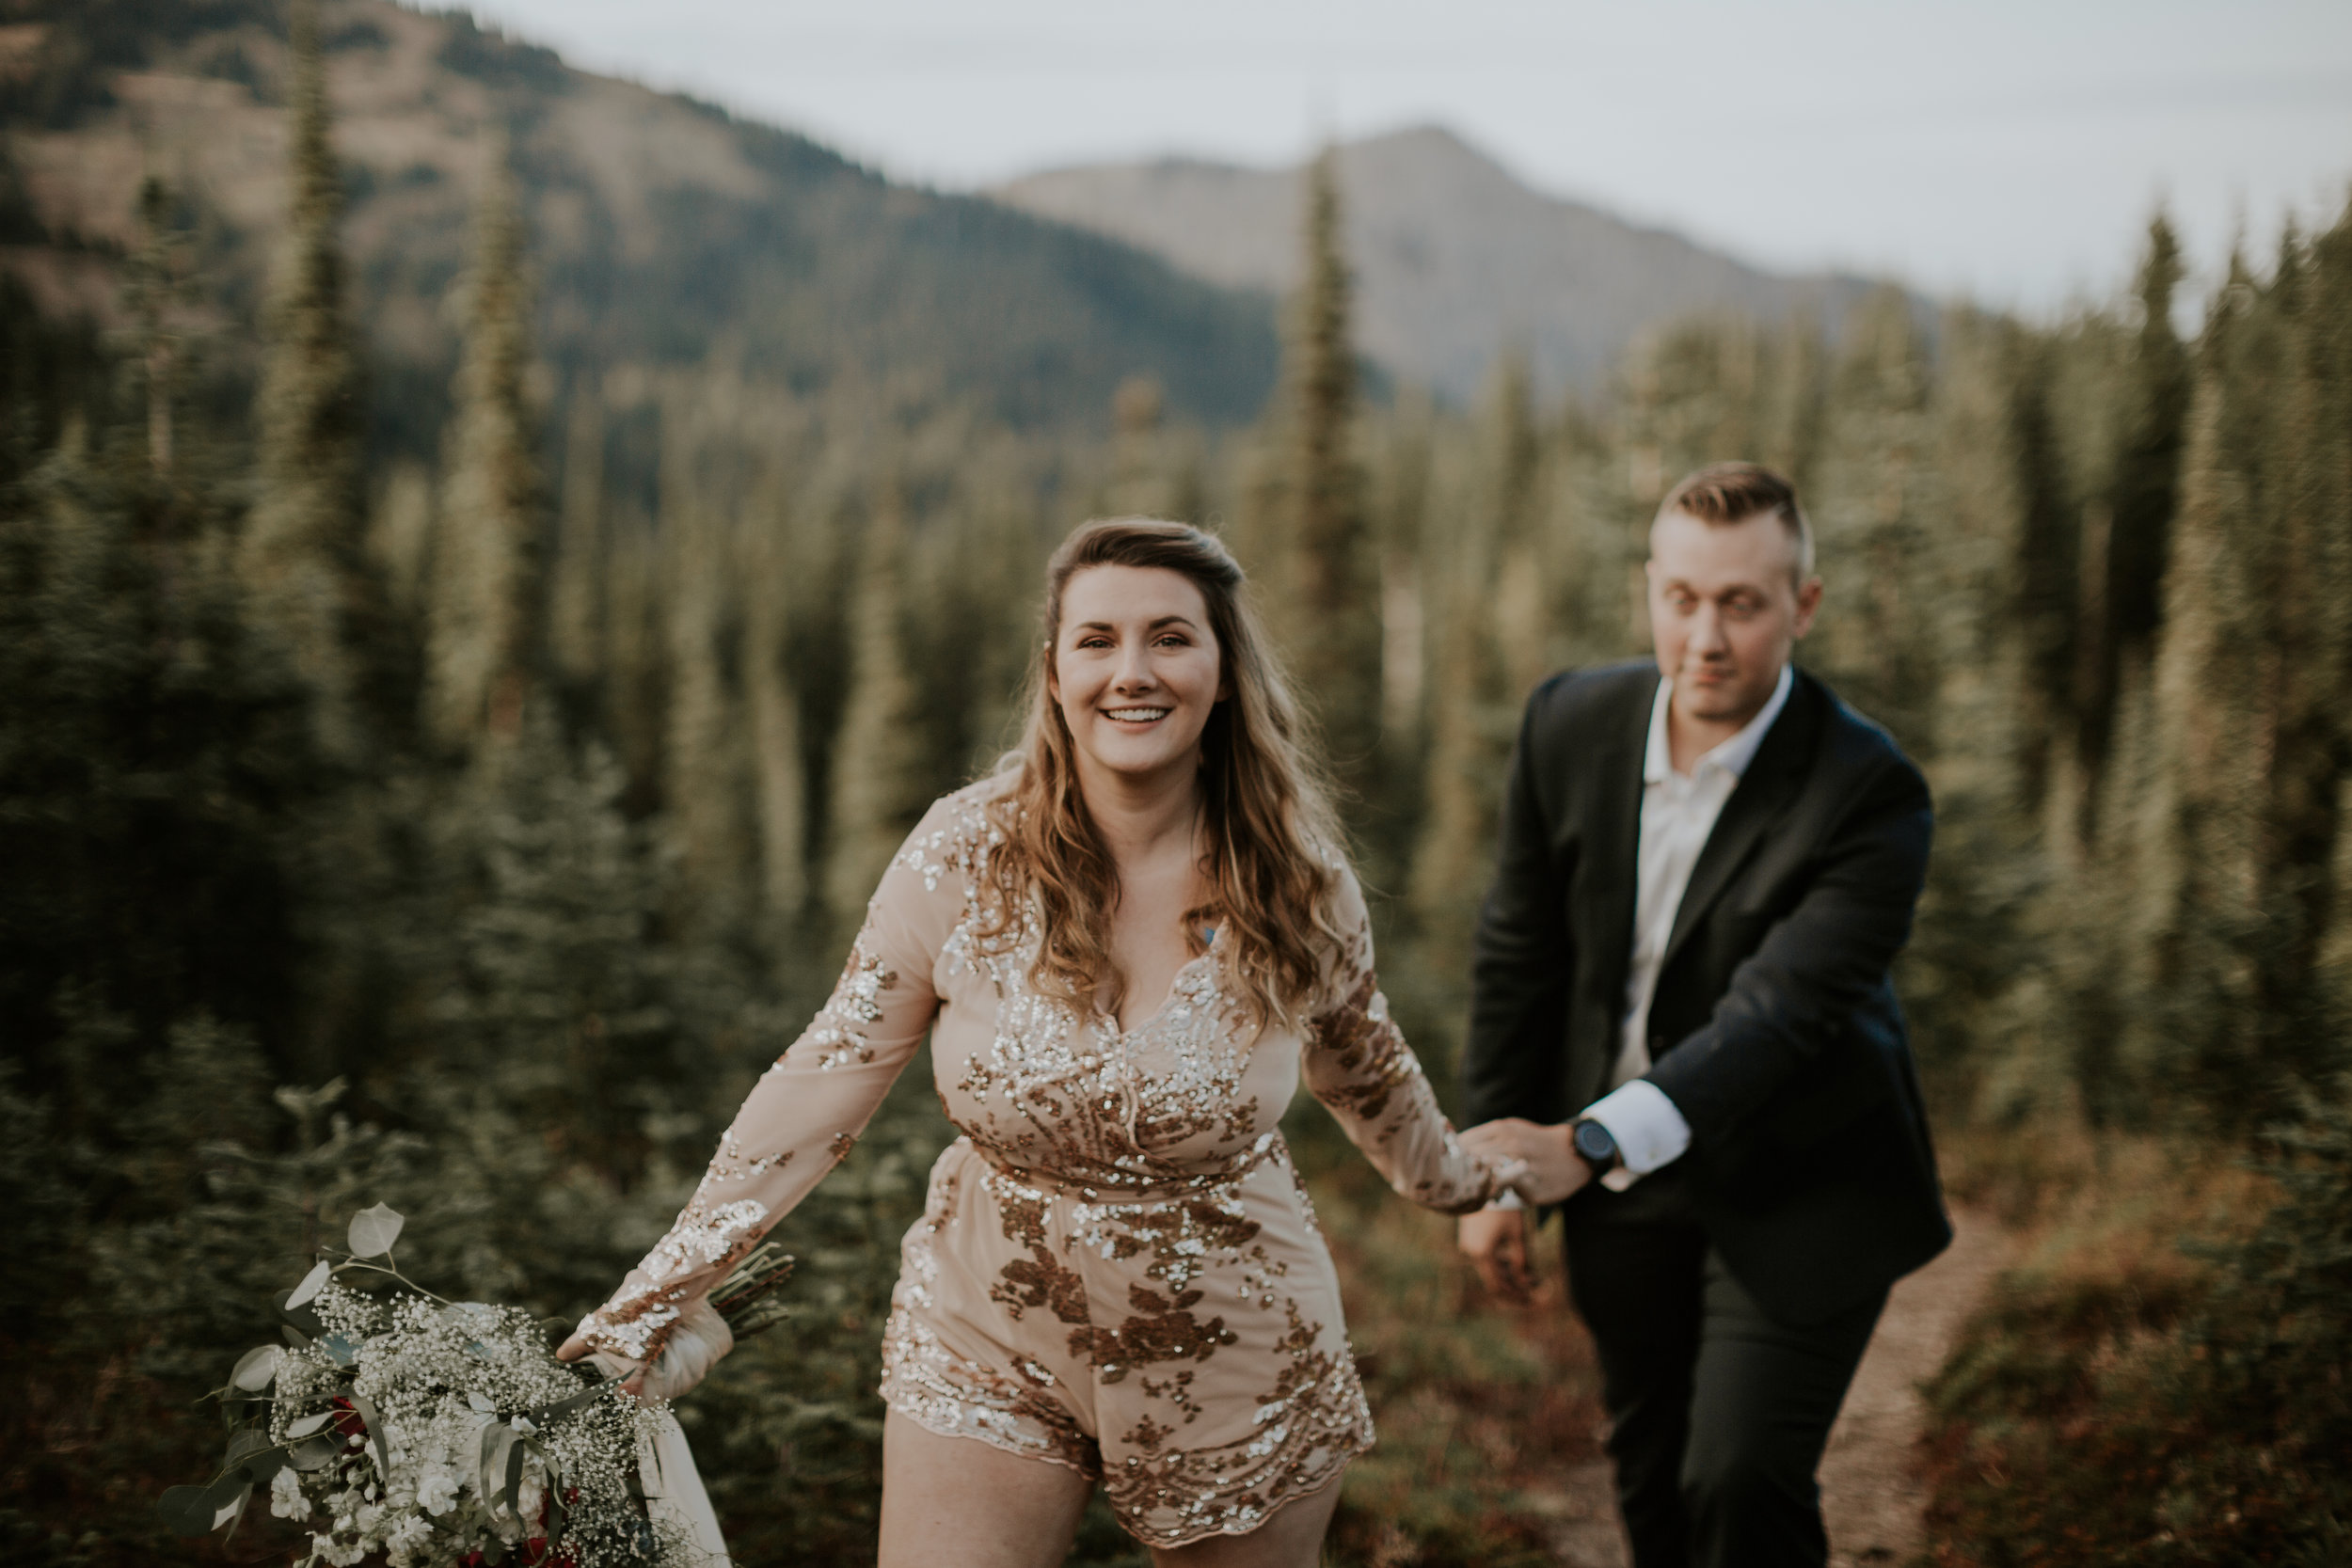 PNW-Hurricane-Ridge-Port-Angeles-Washington-elopement-photographer-kayla-dawn-photography-kayladawnphoto-wedding-anniversary-photoshoot-olympic-peninsula-197.jpg